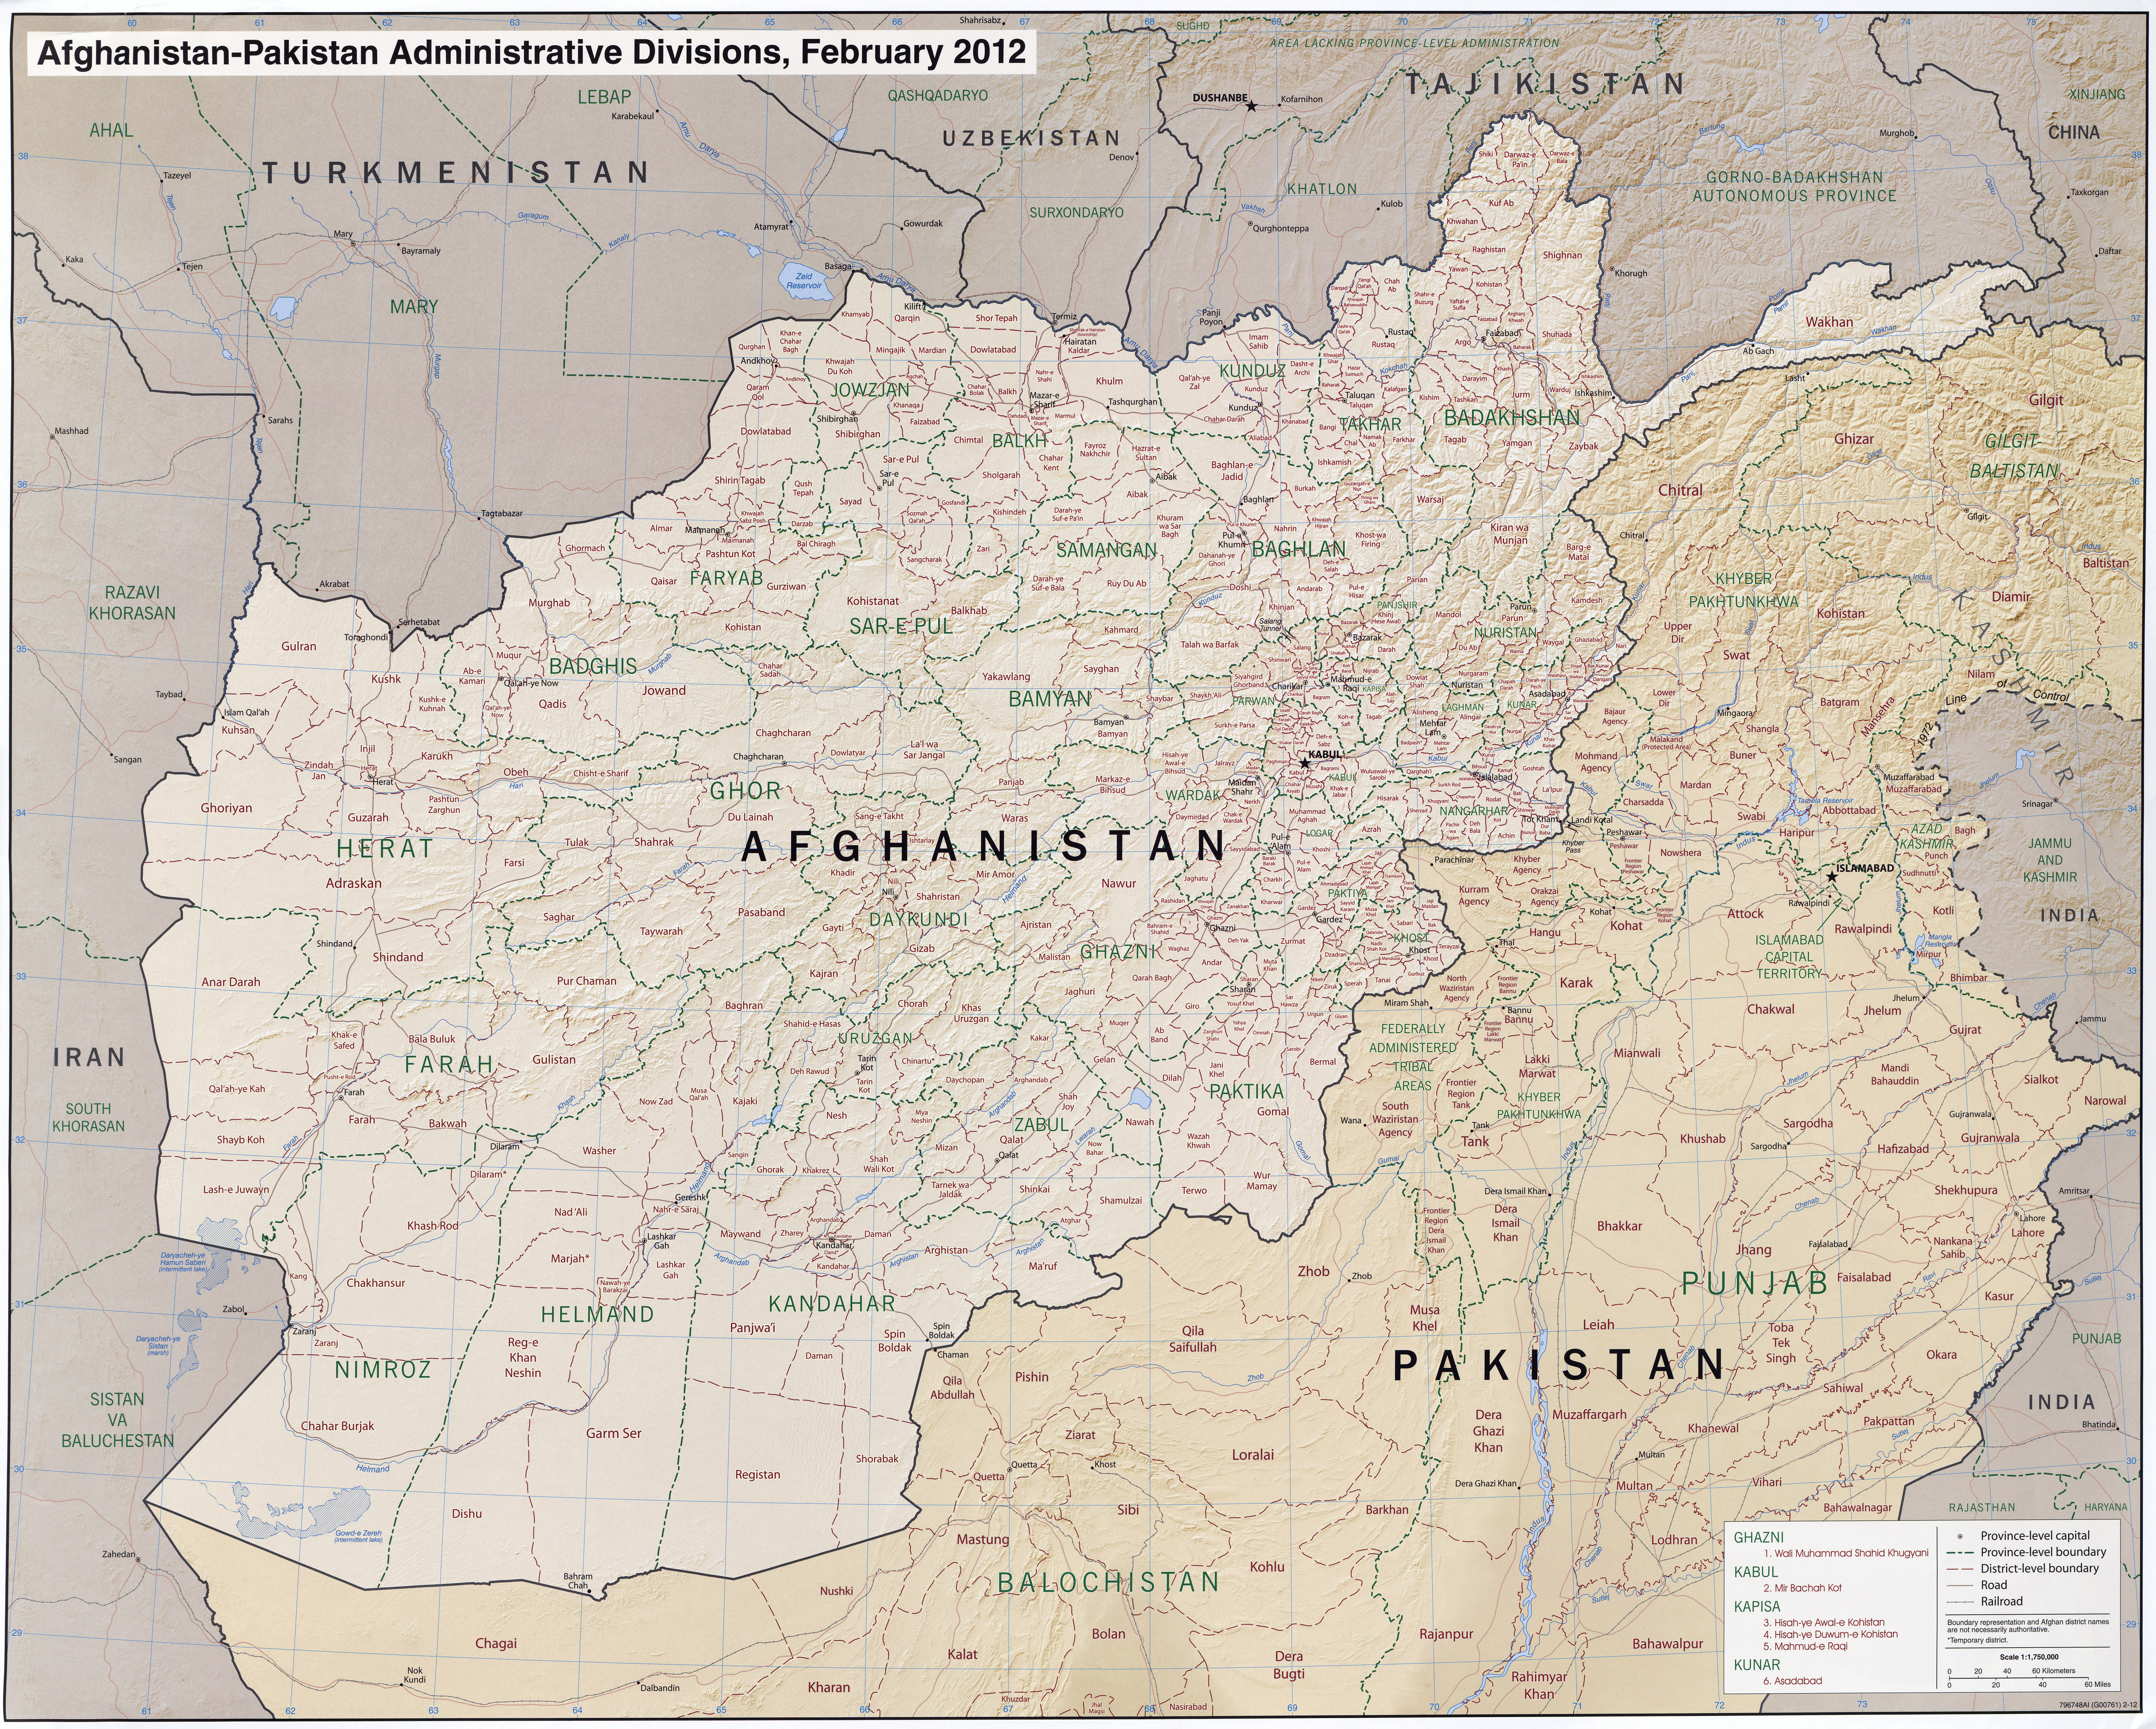 Maps of Afghanistan | Detailed map of Afghanistan in English ... Afghanistan Political Map Of Major Cities on afghanistan climate map, afghanistan area map, afghanistan time zone map, pakistan topographic map, afghanistan rivers map, afghanistan regional command map, afghanistan agriculture map, afghanistan elevation map, afghanistan airports map, afghanistan political map, afghanistan deserts map, afghanistan terrain map, afghanistan provinces map, afghanistan kabul city map, afghanistan continent map, bagram afghanistan map, afghanistan vegetation map, afghanistan flag map, afghanistan languages map, afghanistan culture map,